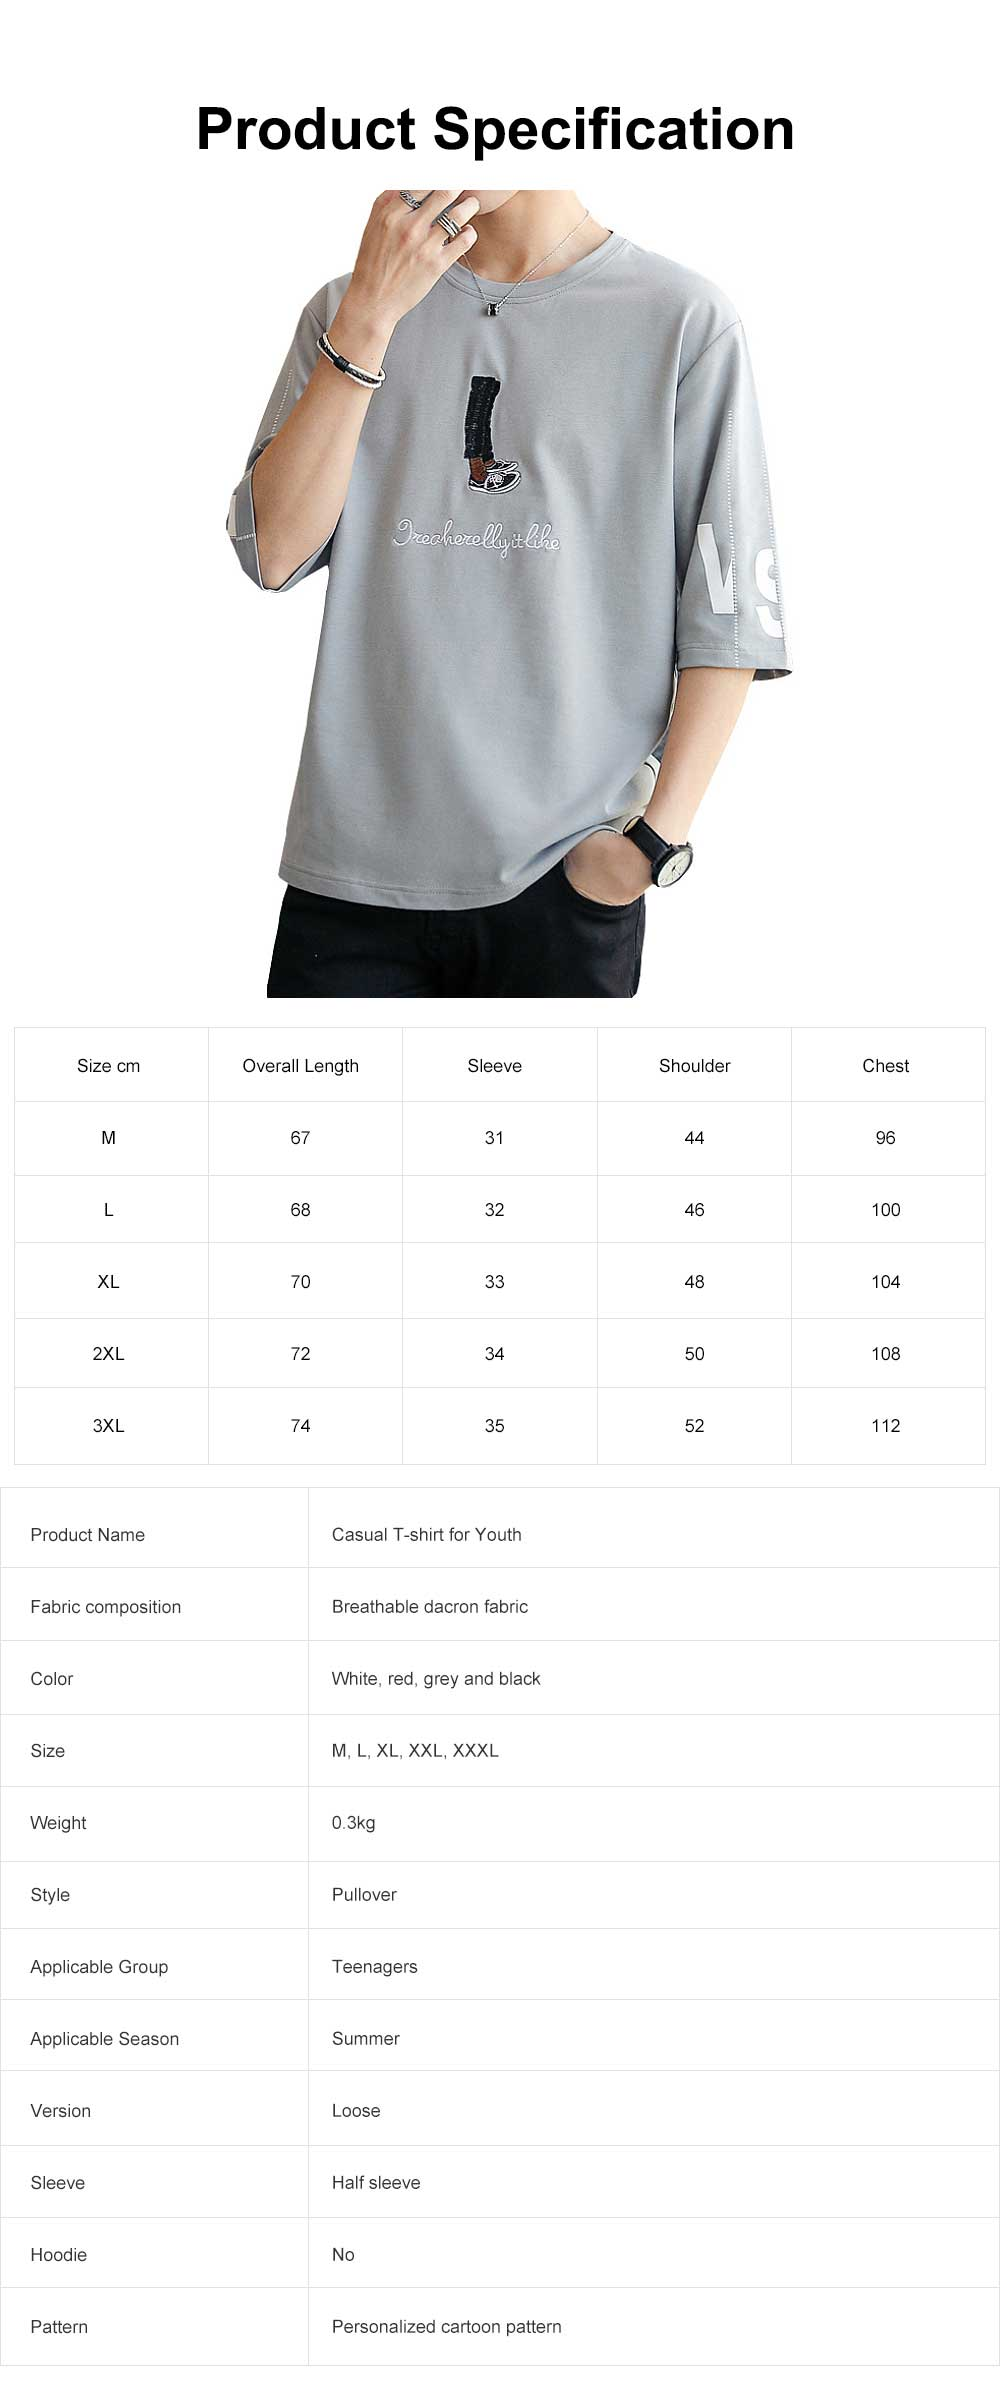 Short Sleeve Round Collar T-shirt for Male Wear Spring Summer, Loose Version Casual Style T-shirt with Cartoon Pattern, Students Men's Top 7